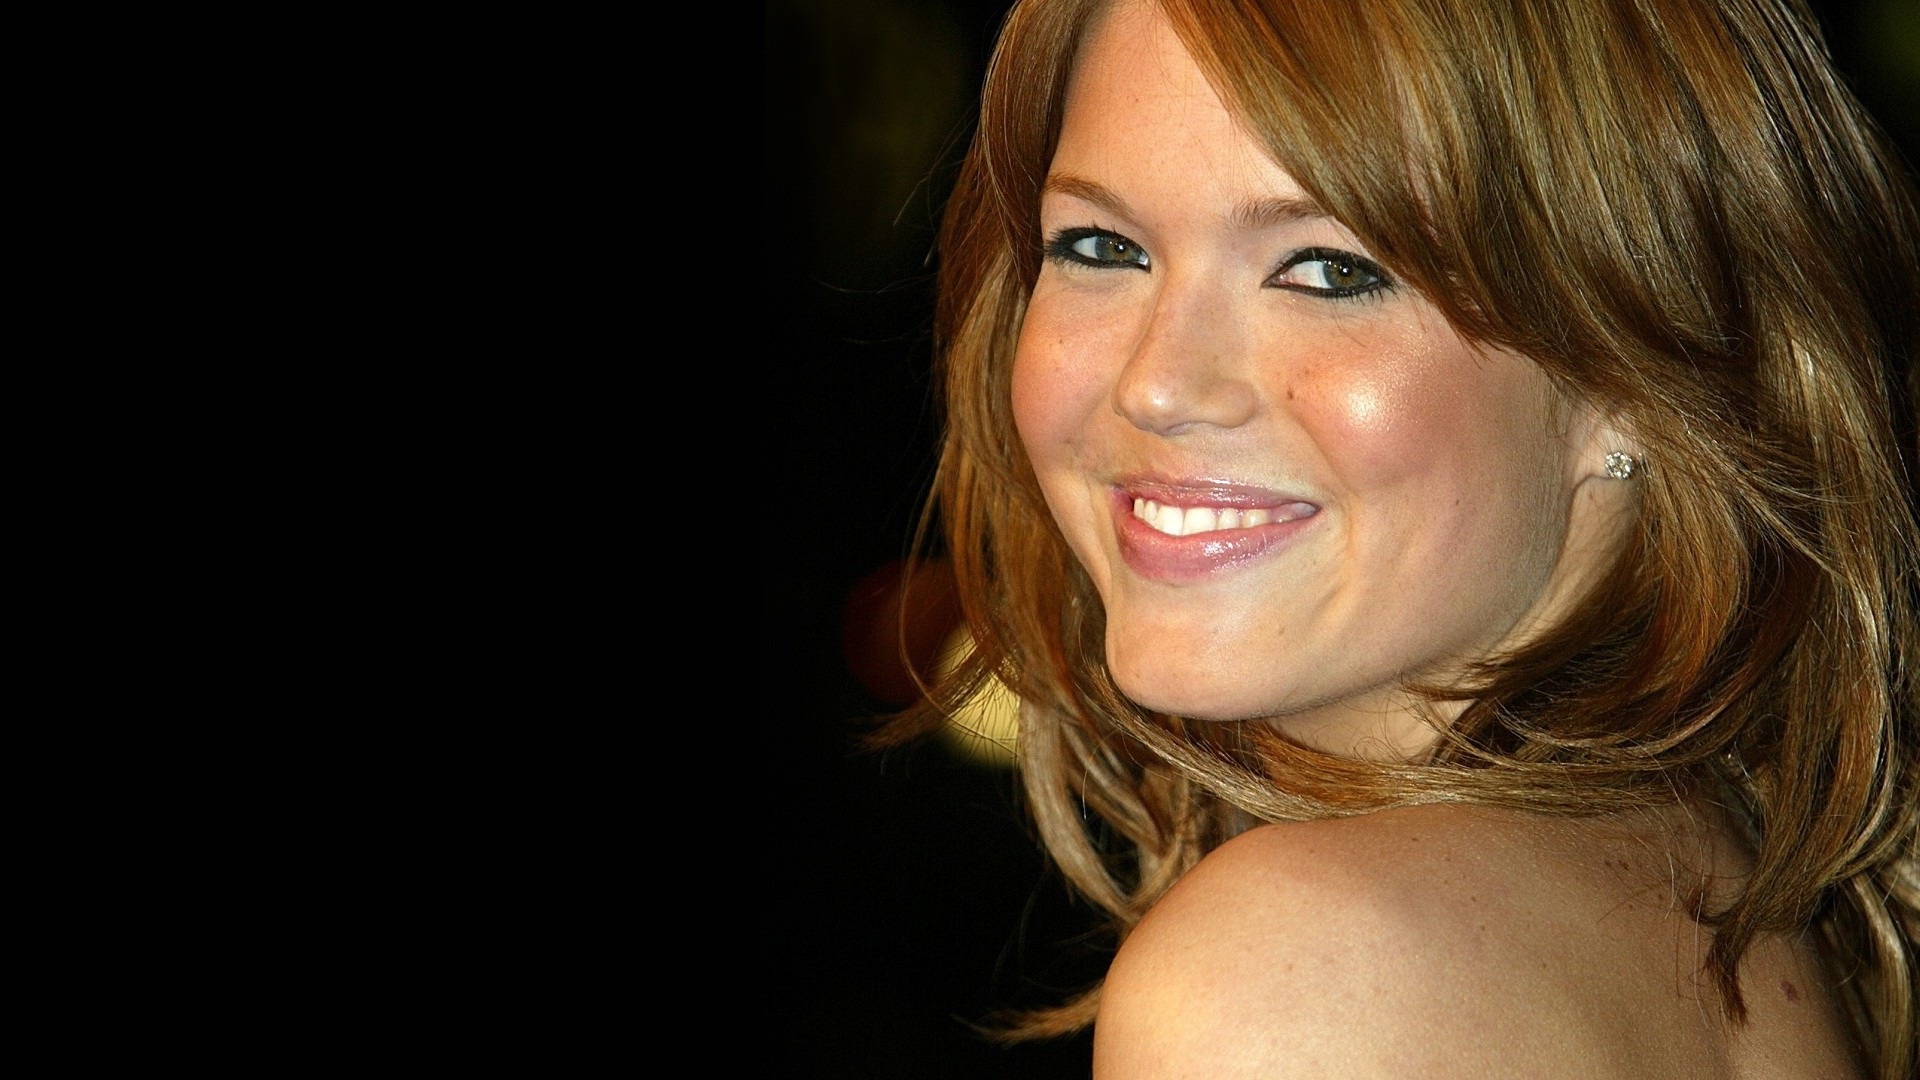 mandy moore wallpapers high quality | download free